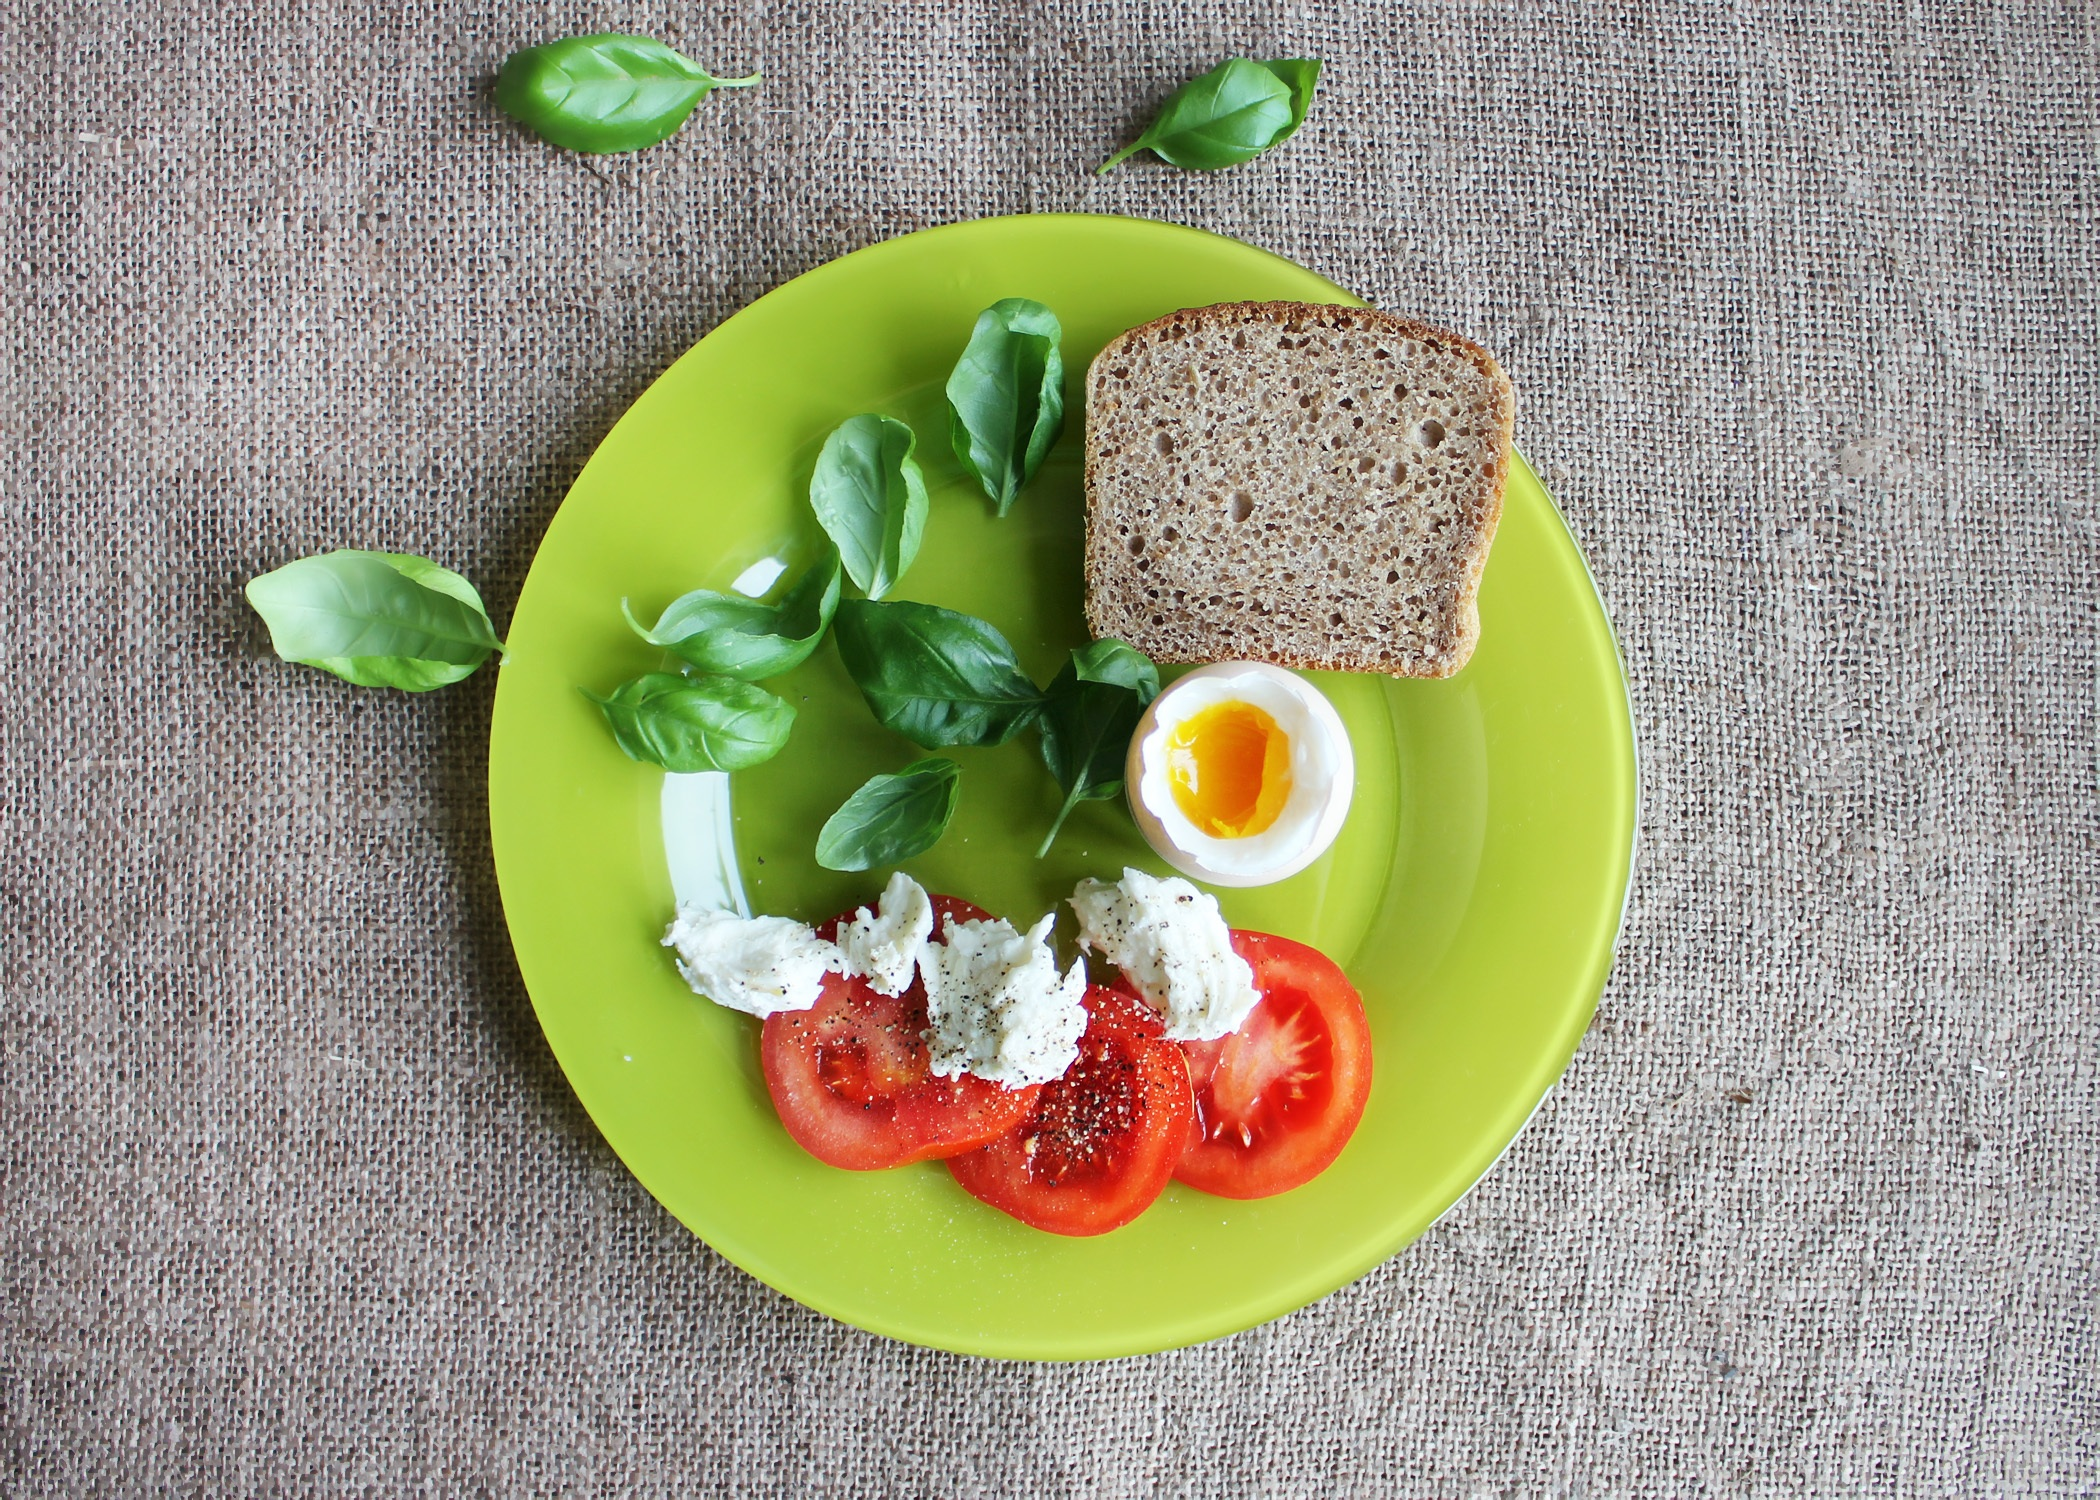 https://static.pexels.com/photos/51163/tomatoes-eggs-dish-the-green-plate-51163.jpeg